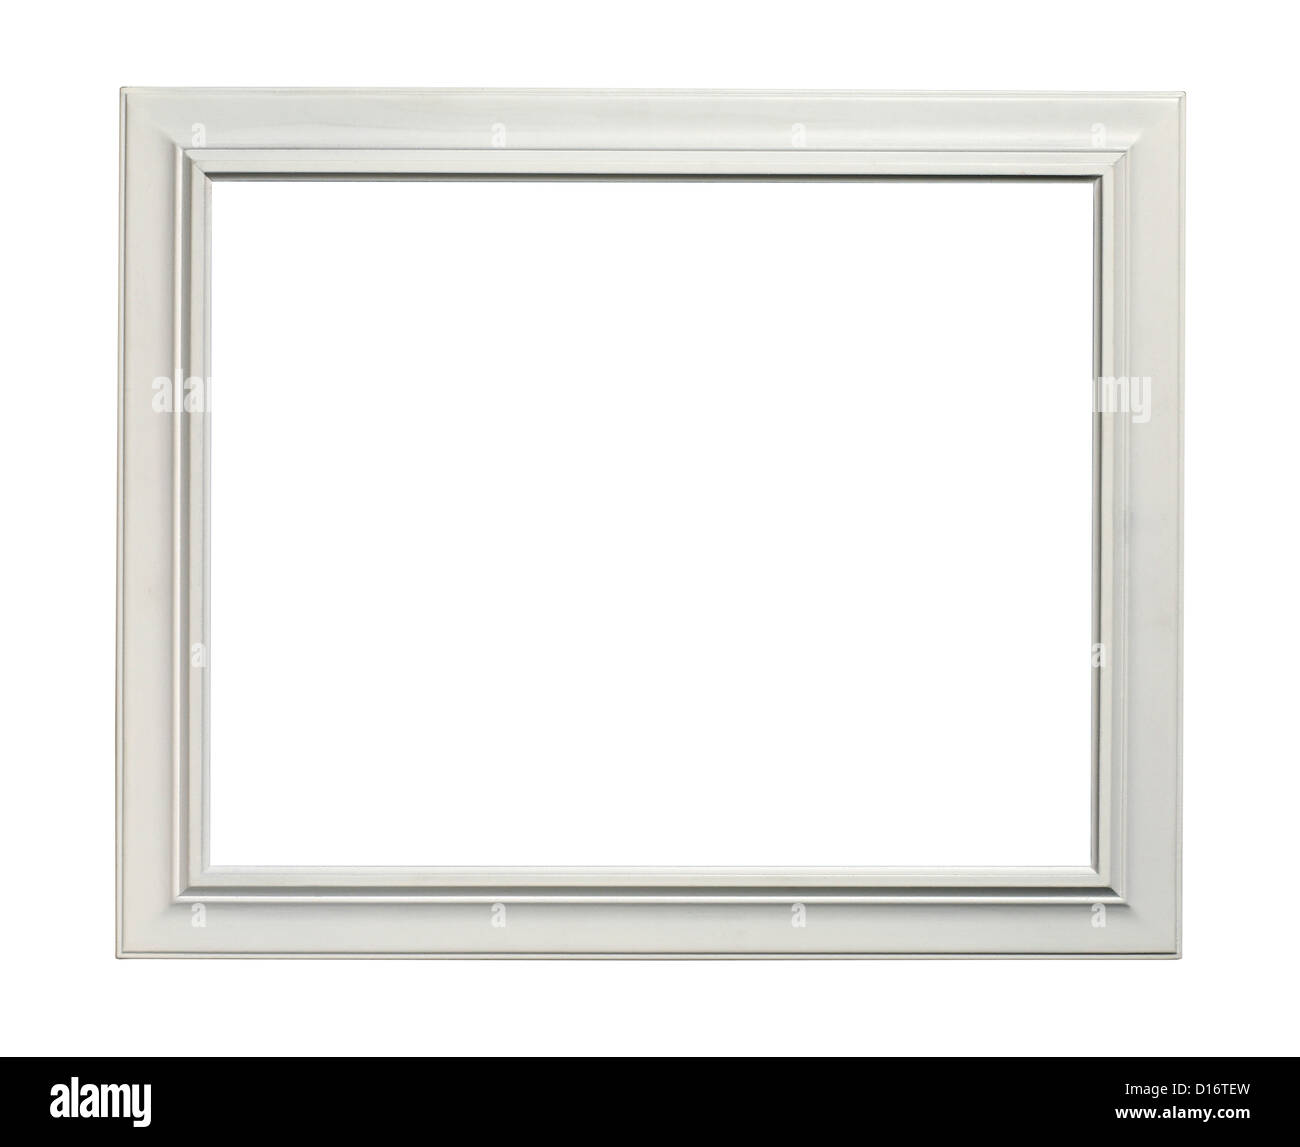 White Borders Stockfotos & White Borders Bilder - Alamy